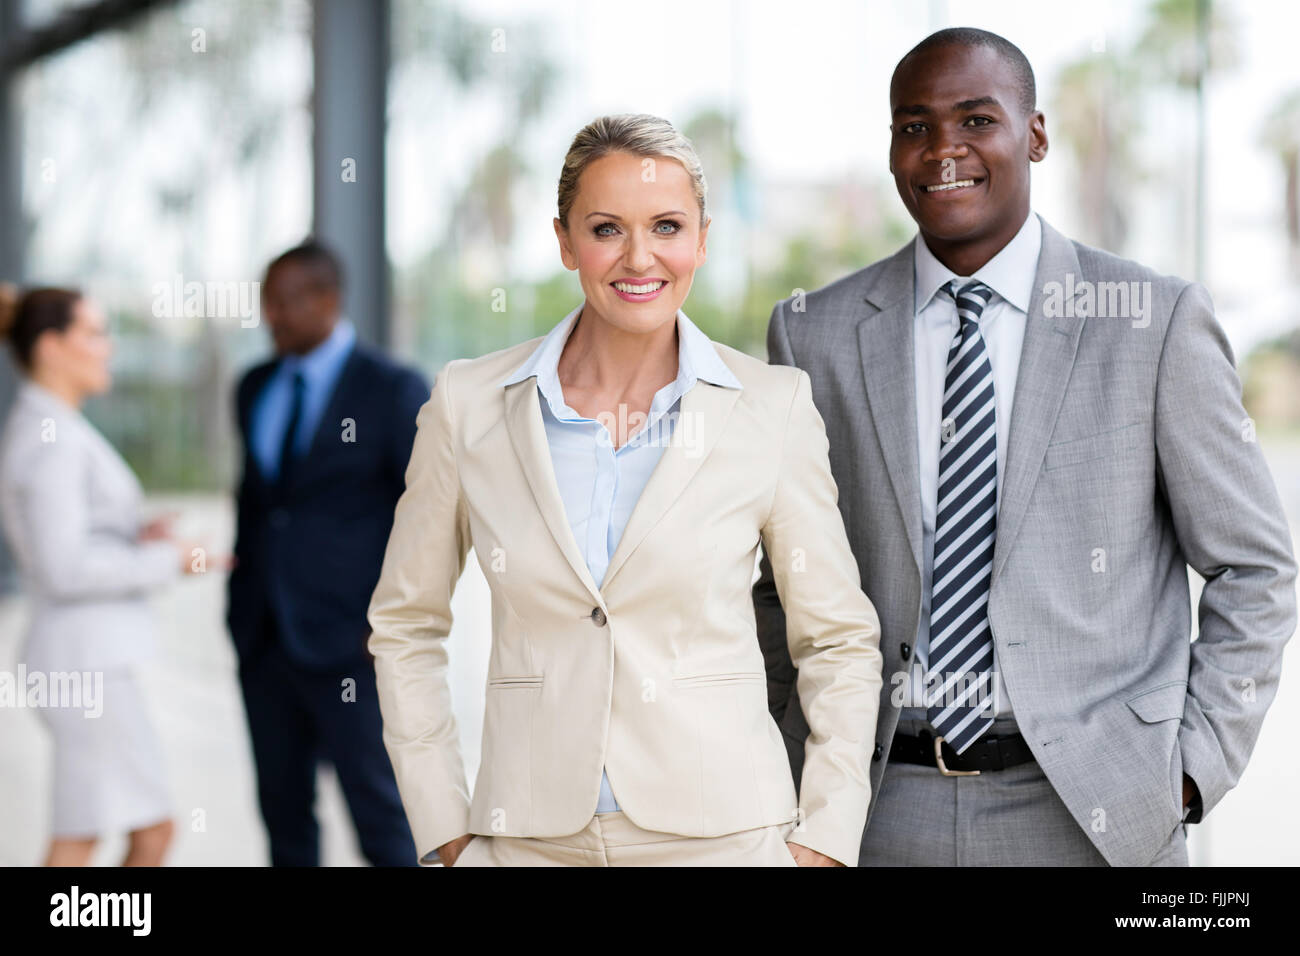 professional corporate co-workers looking at the camera - Stock Image